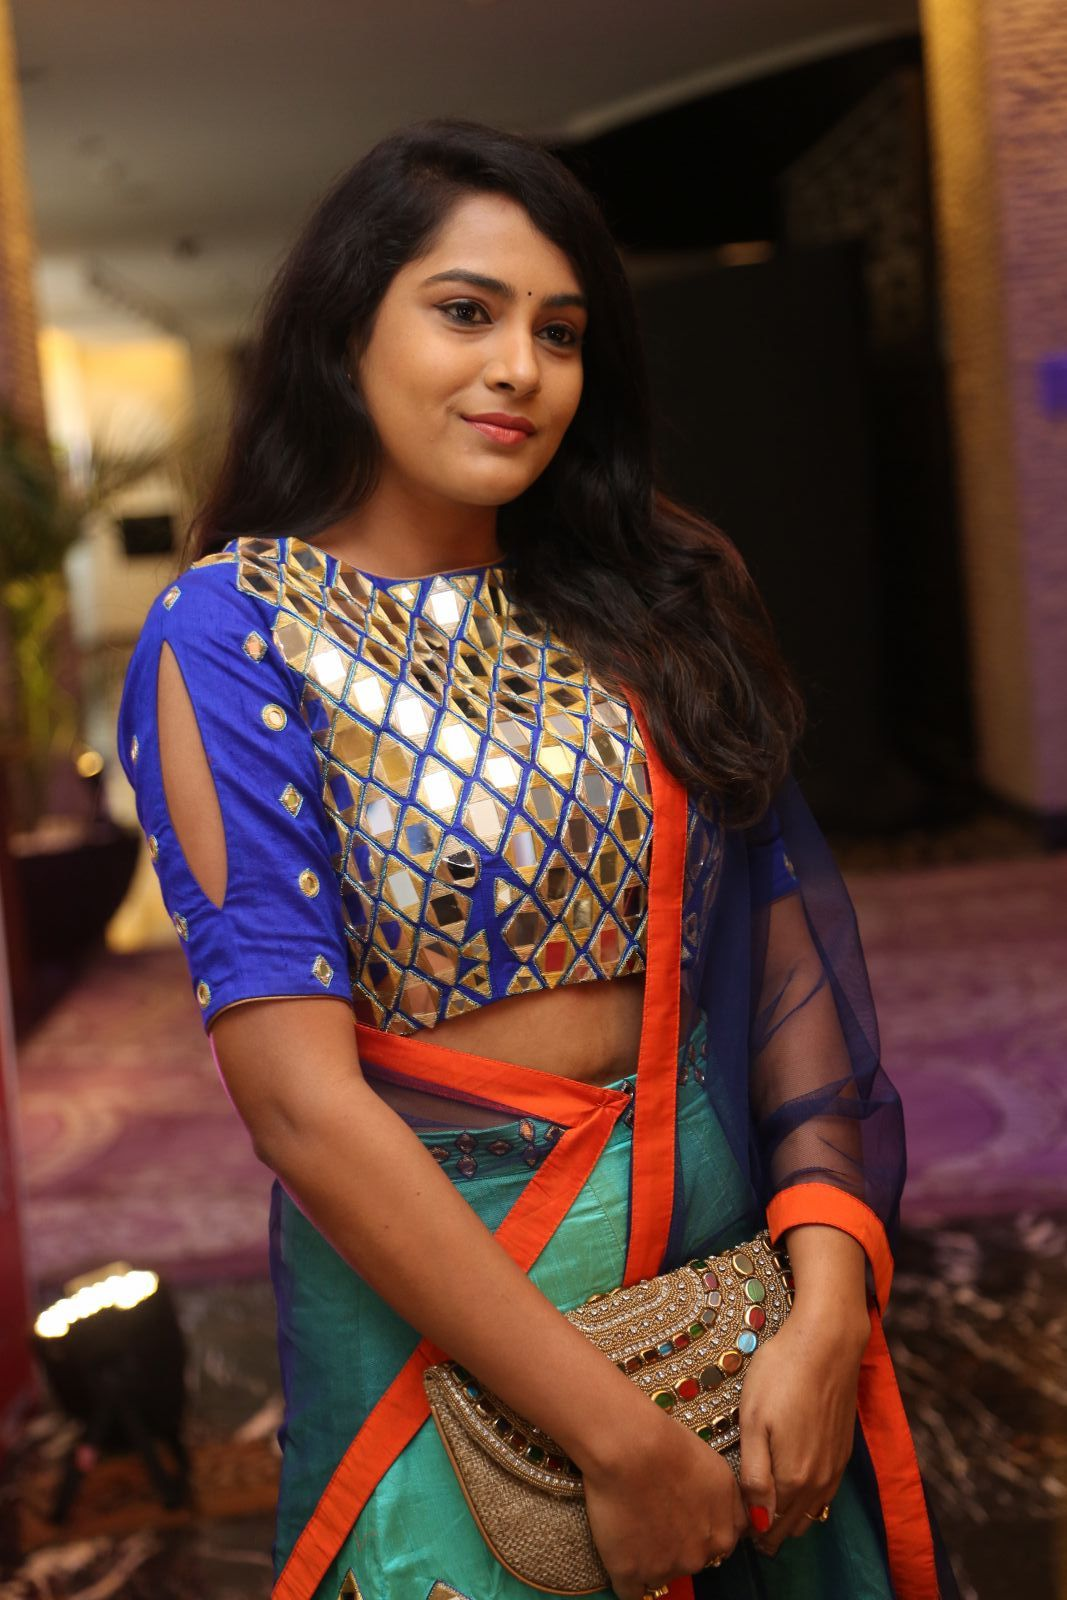 himaza Brand New Photo Stills of Tollywood Actress Himaza | South Actresses Himaza 75